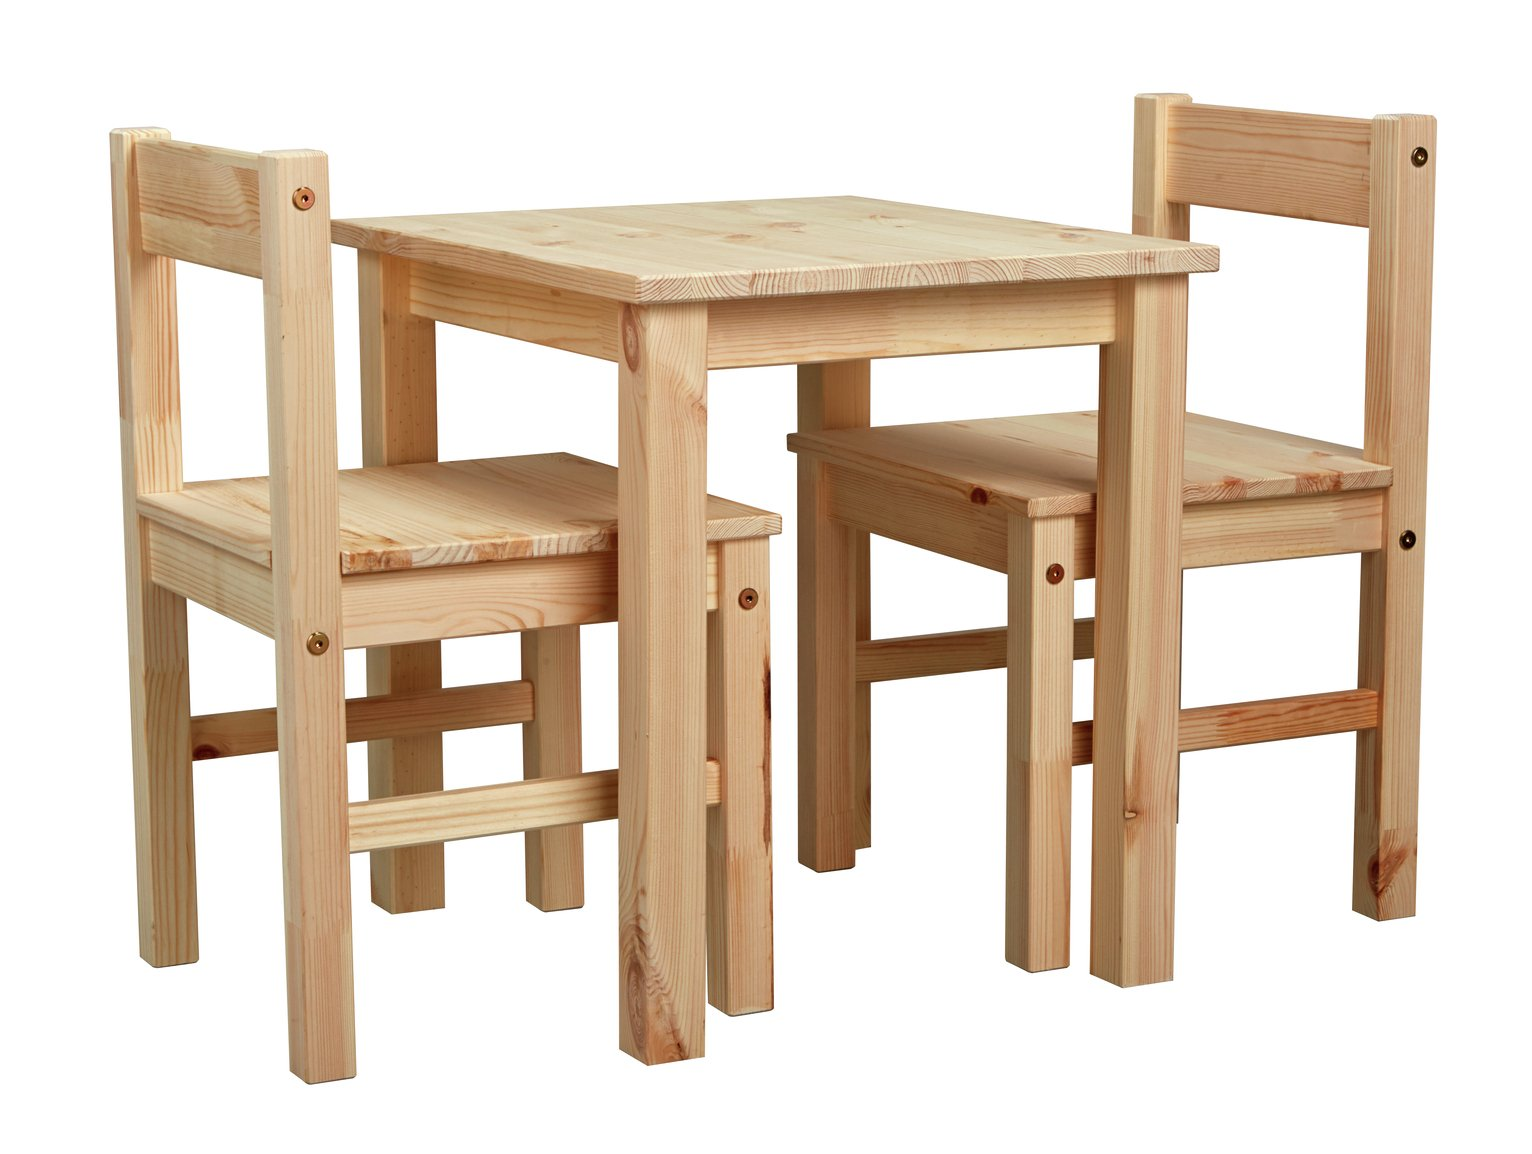 Argos Home Scandinavia Pine Table u0026 2 Chairs  sc 1 st  Argos & Buy Argos Home Scandinavia Pine Table u0026 2 Chairs | Kids tables and ...